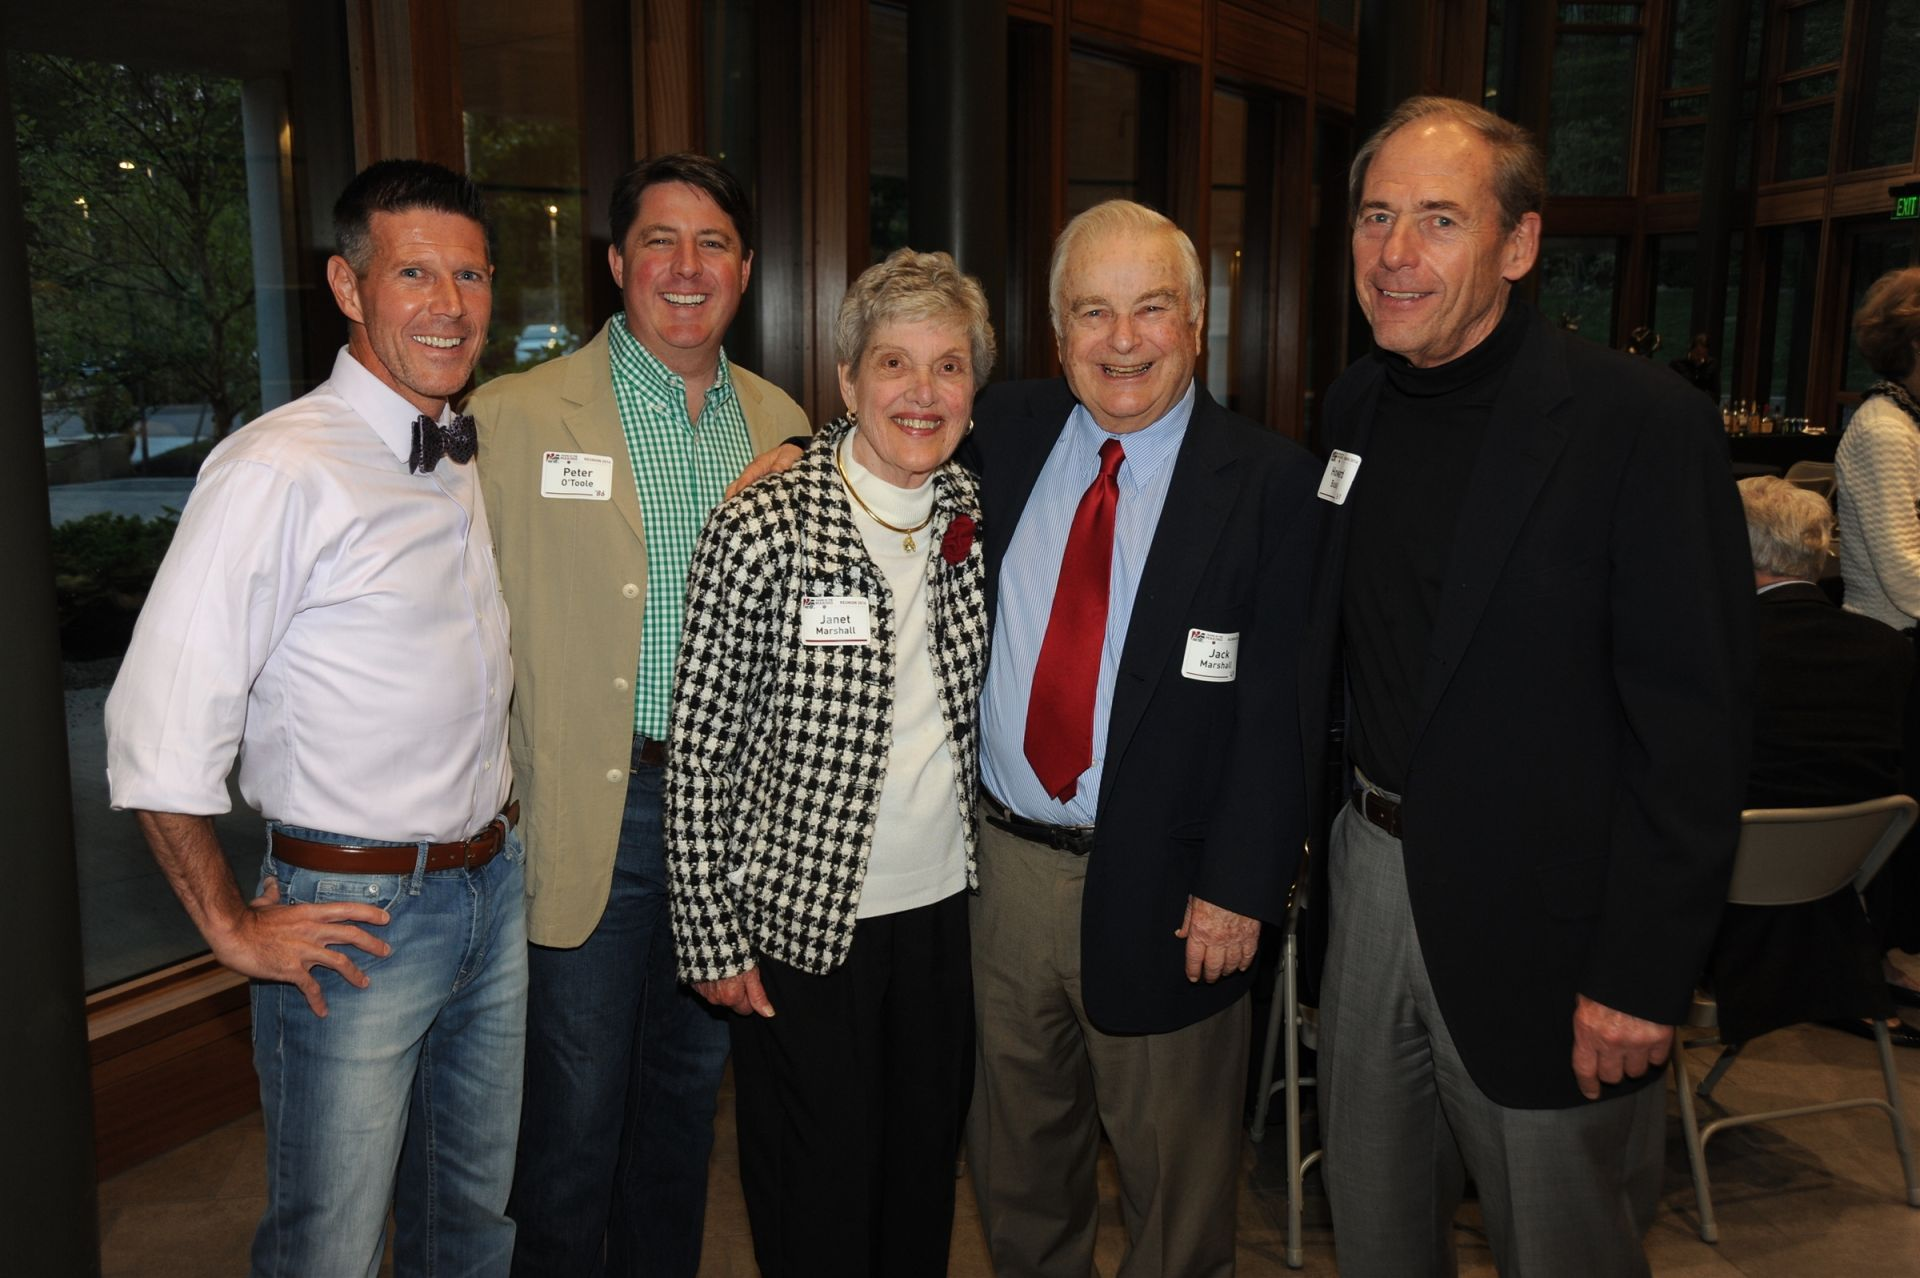 Dan Hartman '86, Peter O'Toole '86, Janet and Jack Marshall '49, and Howard Busse '61